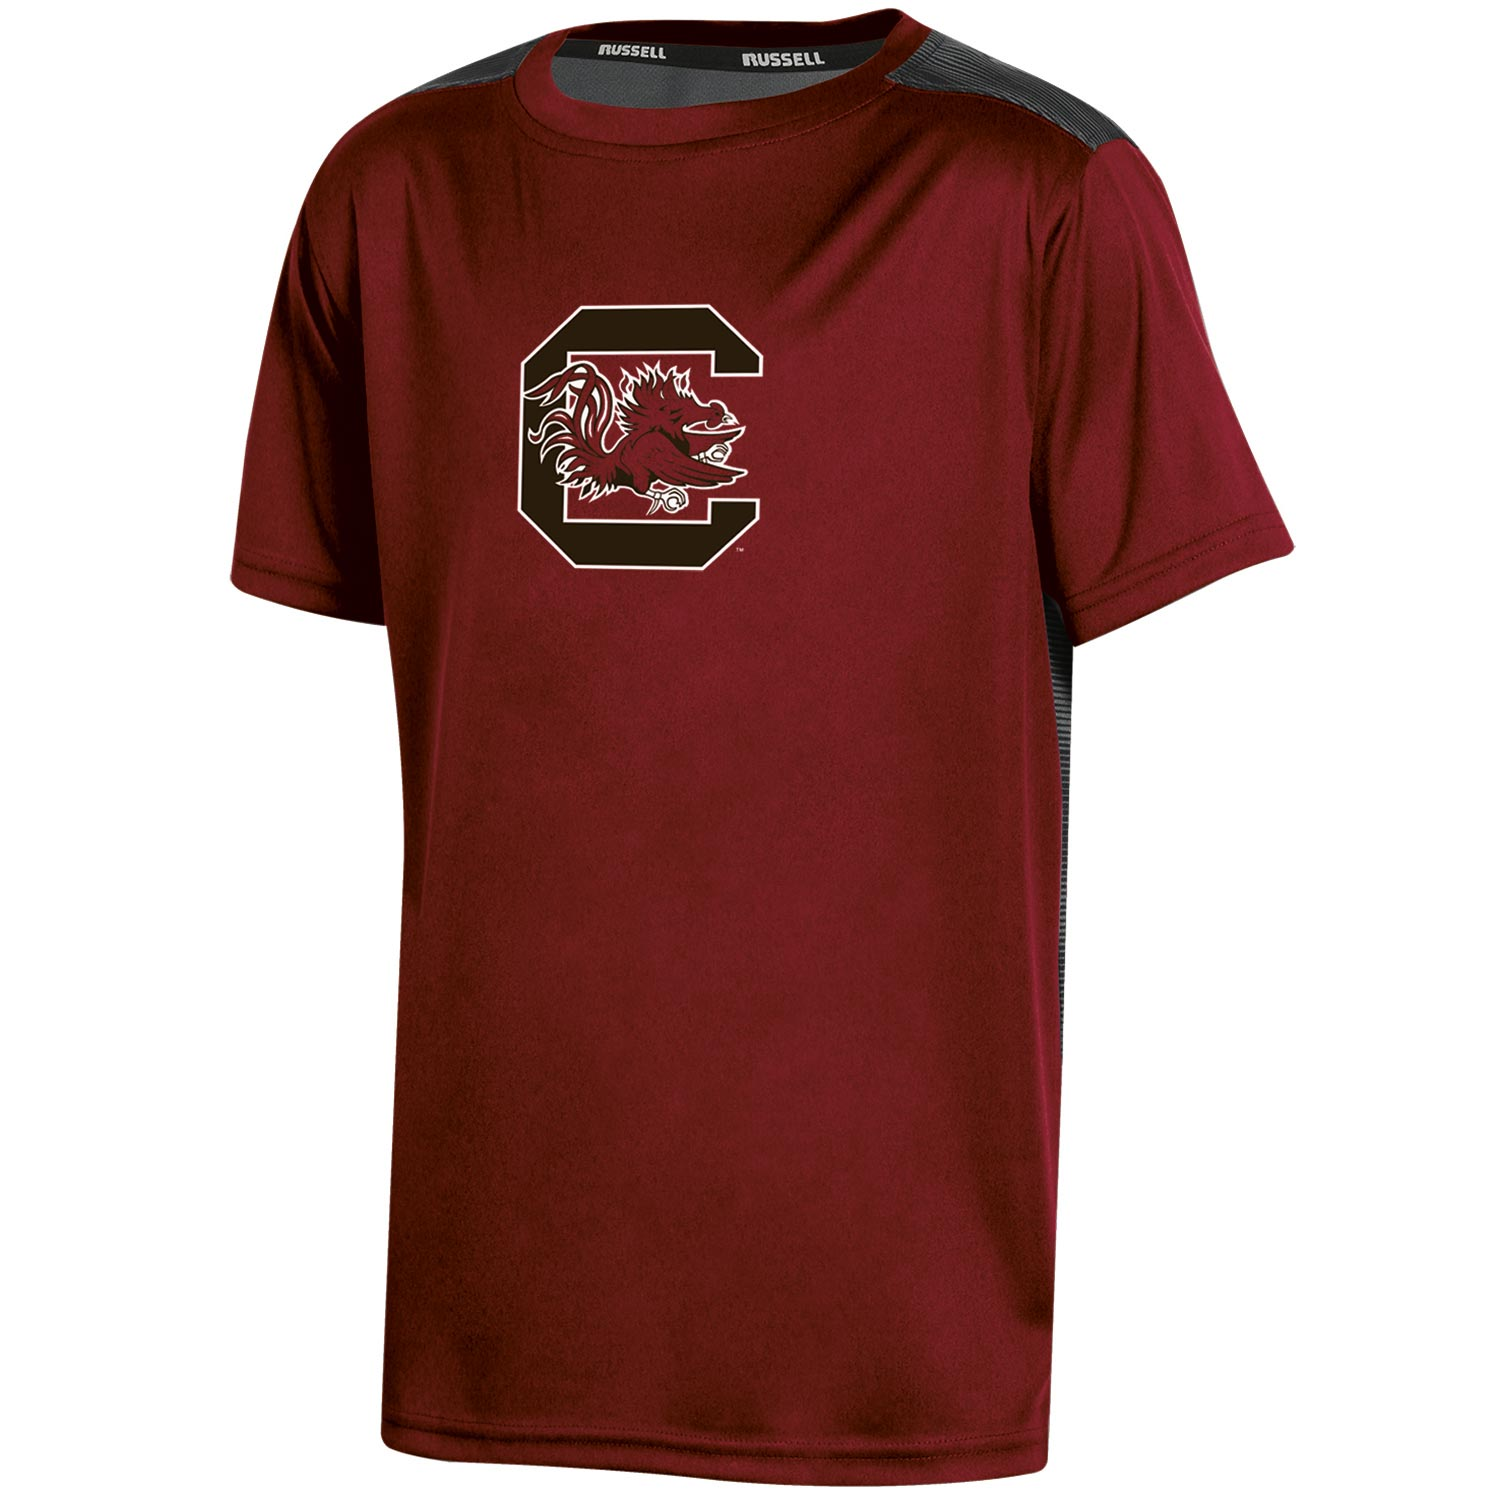 Youth Russell Garnet South Carolina Gamecocks Color Block T-Shirt